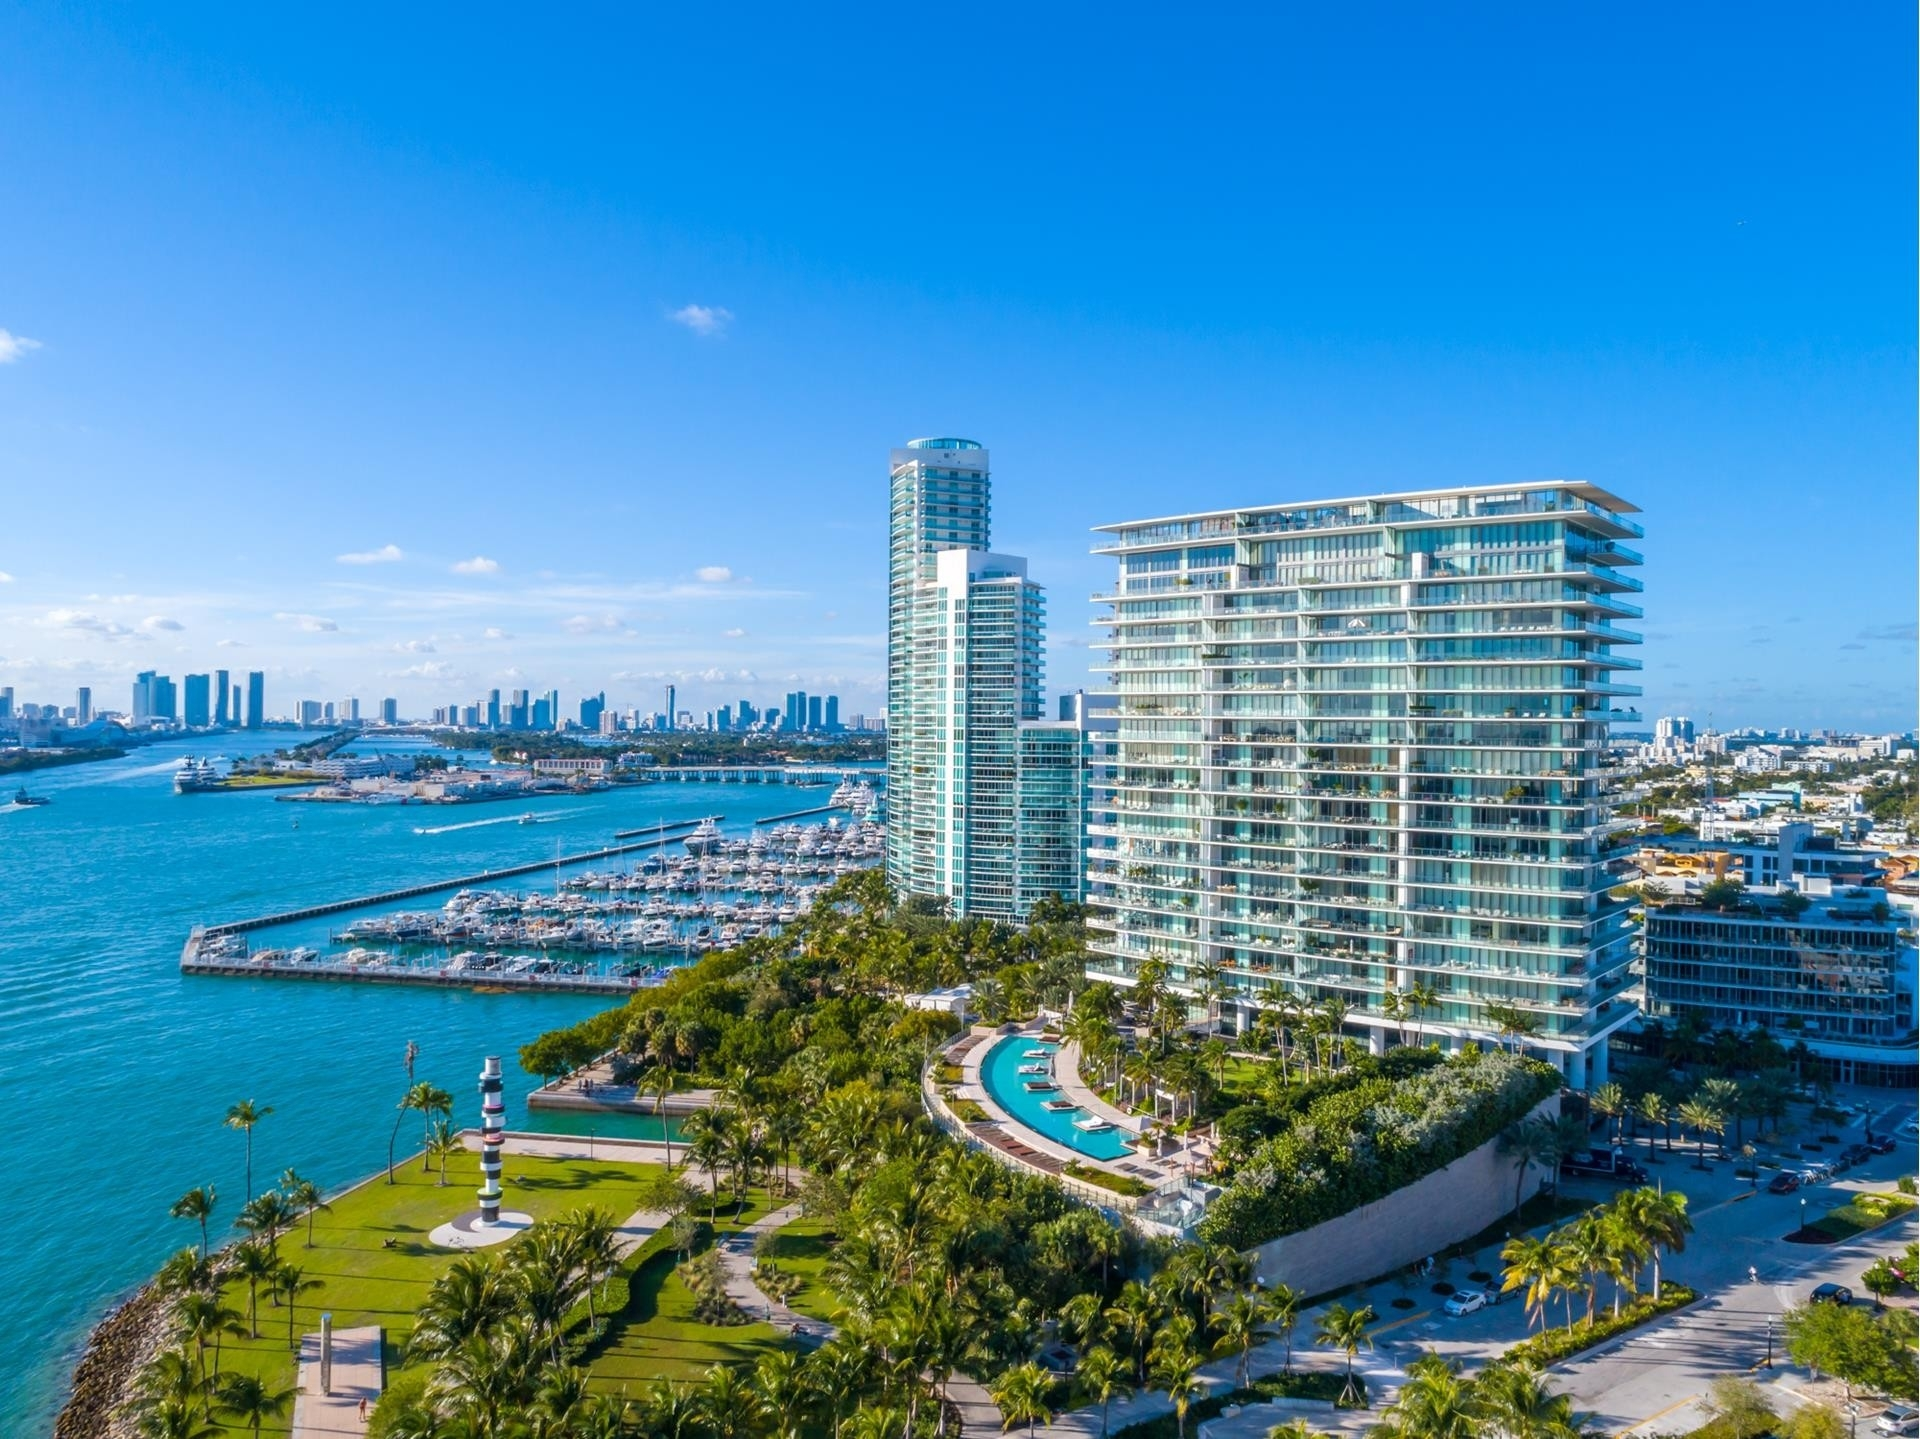 Property at 800 S Pointe Dr , 1401 South Point, Miami Beach, FL 33139